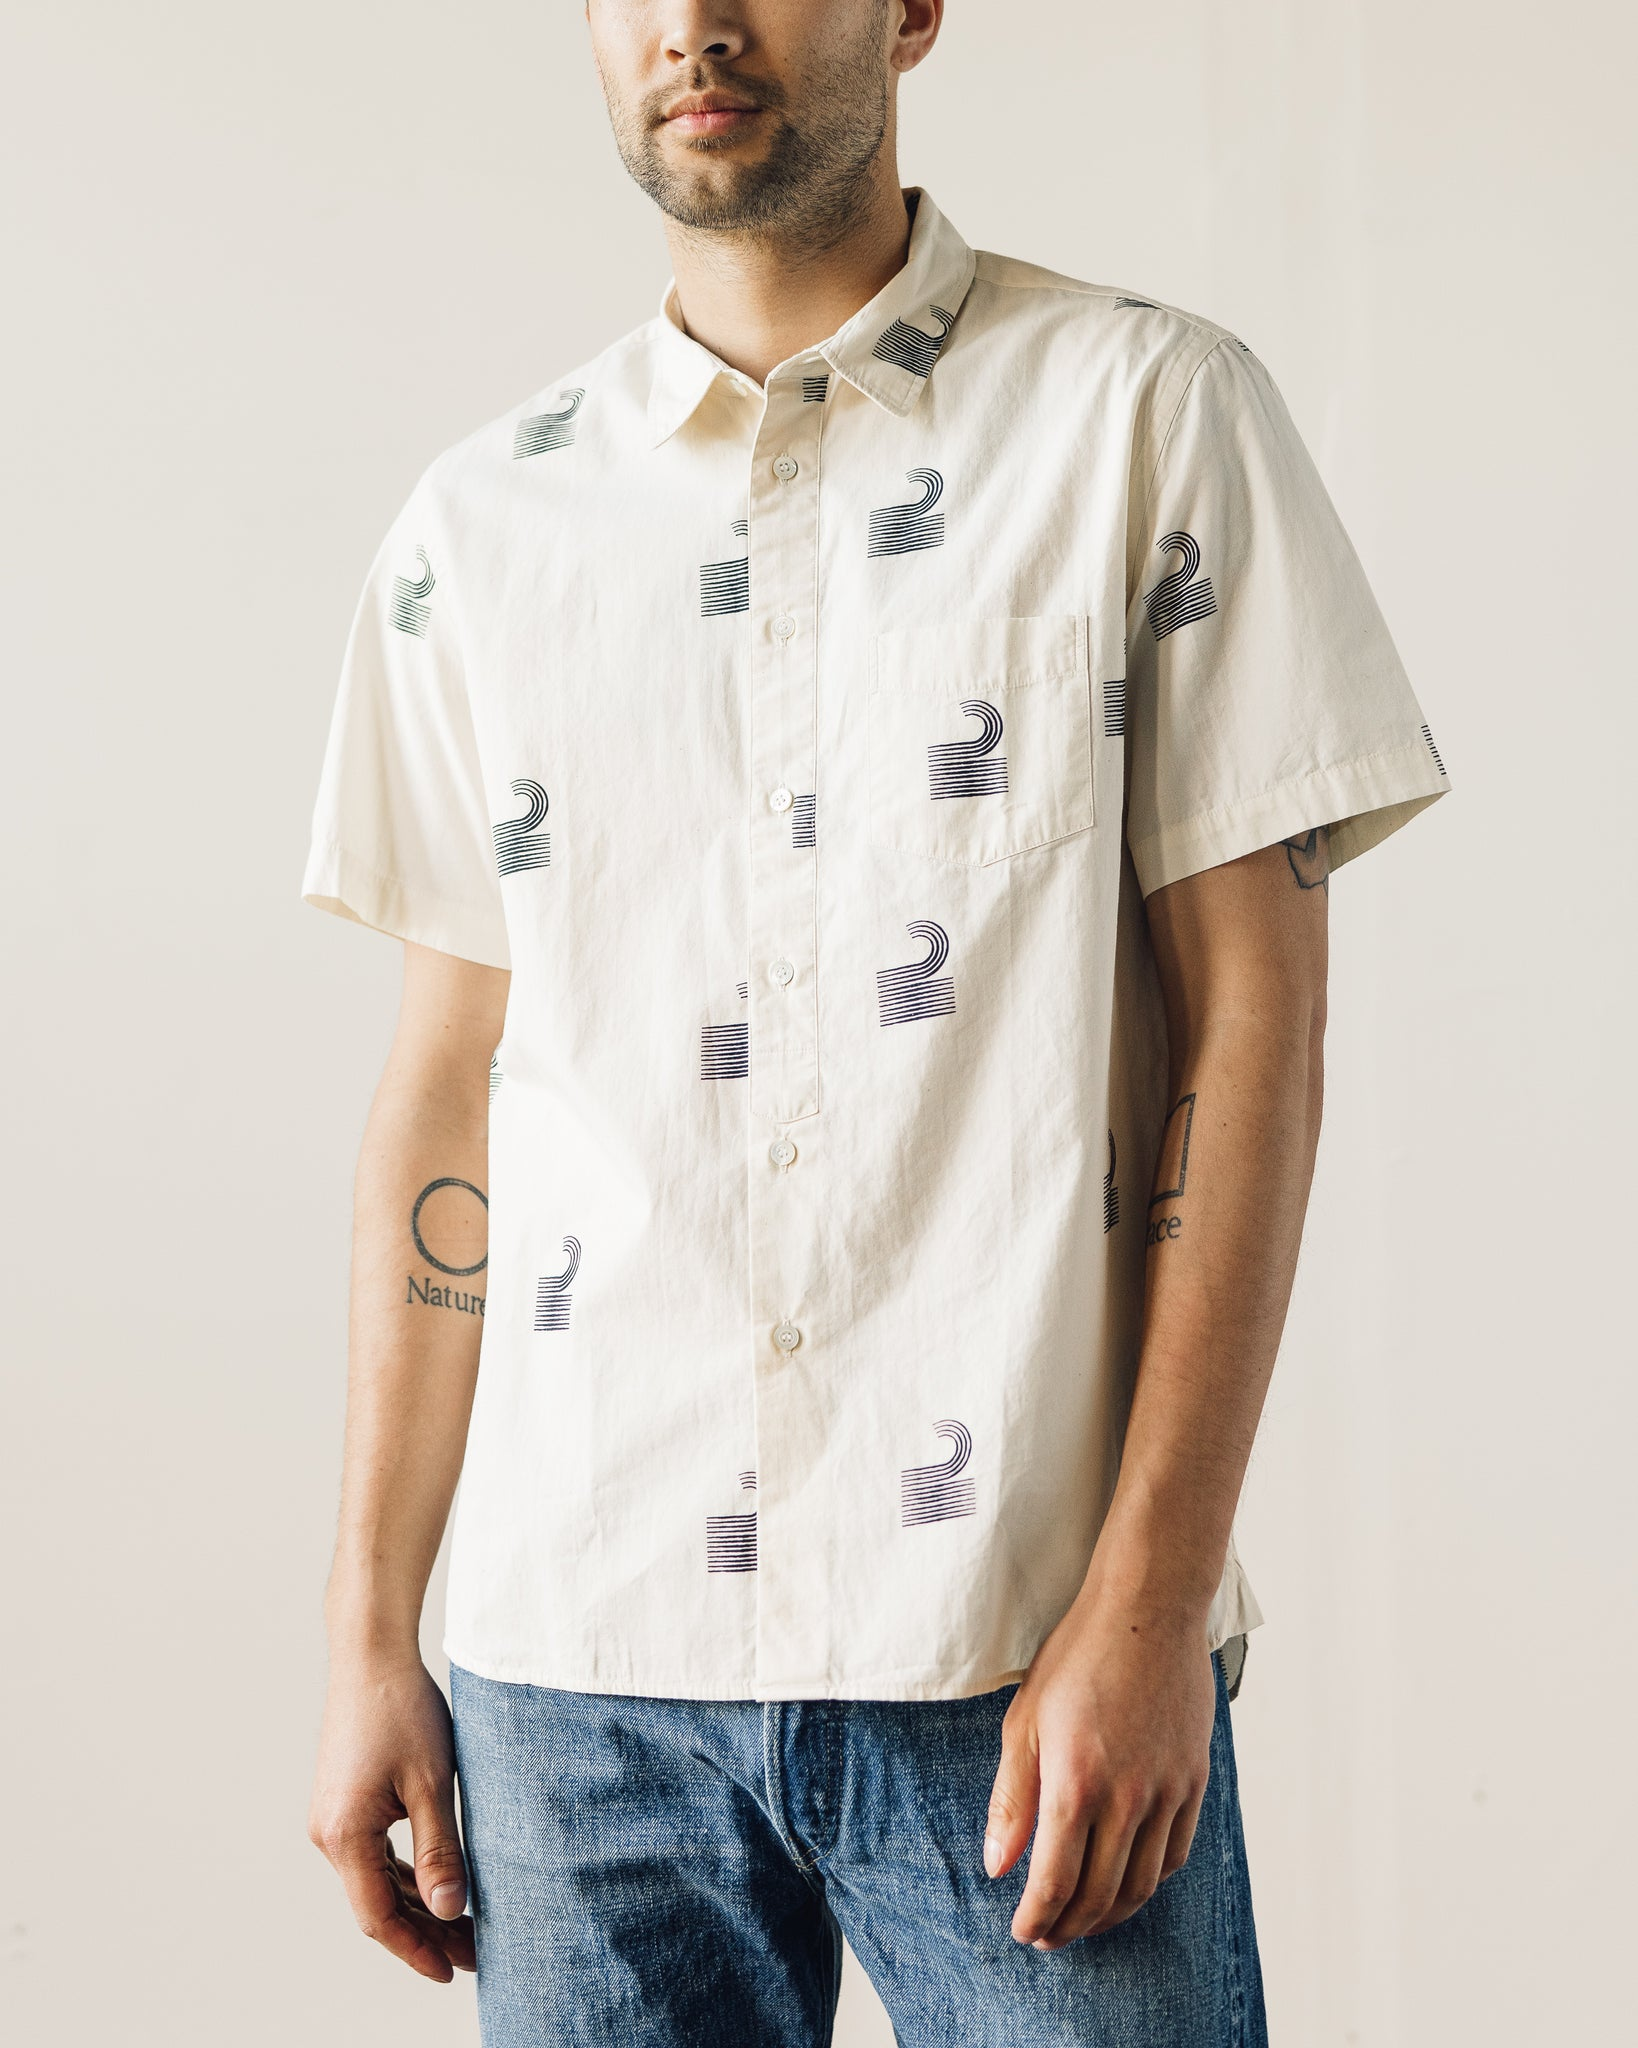 La Paz Alegre Shirt, Wave